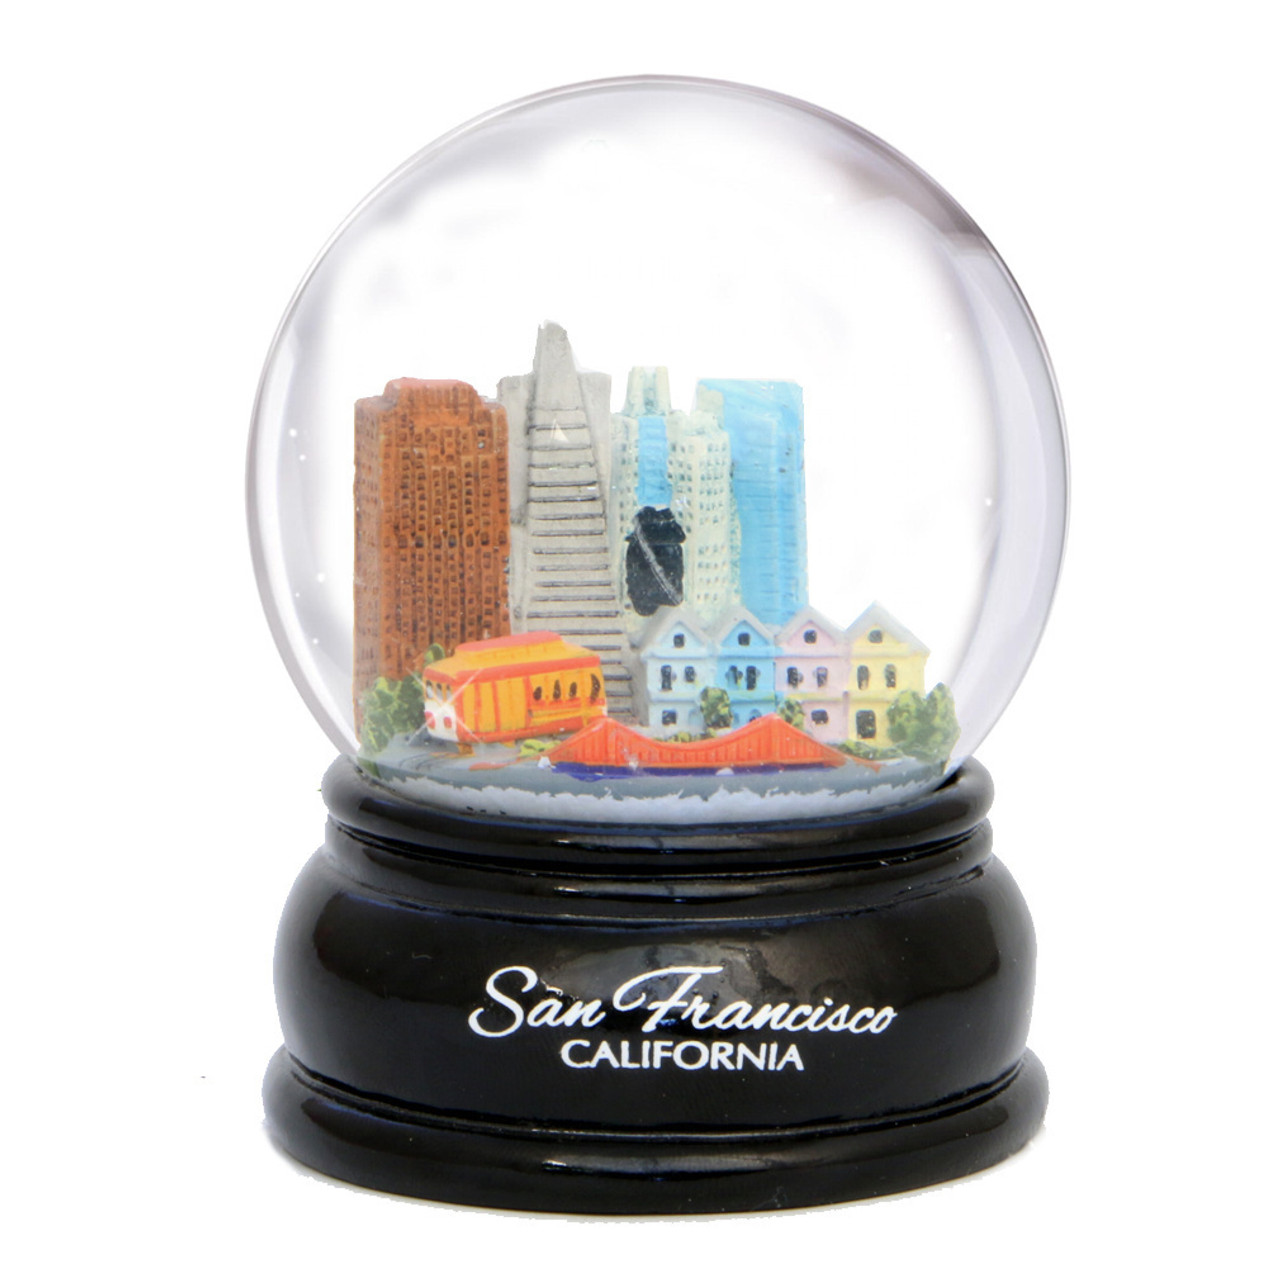 San Francisco Snow Globes With Golden Gate Bridge